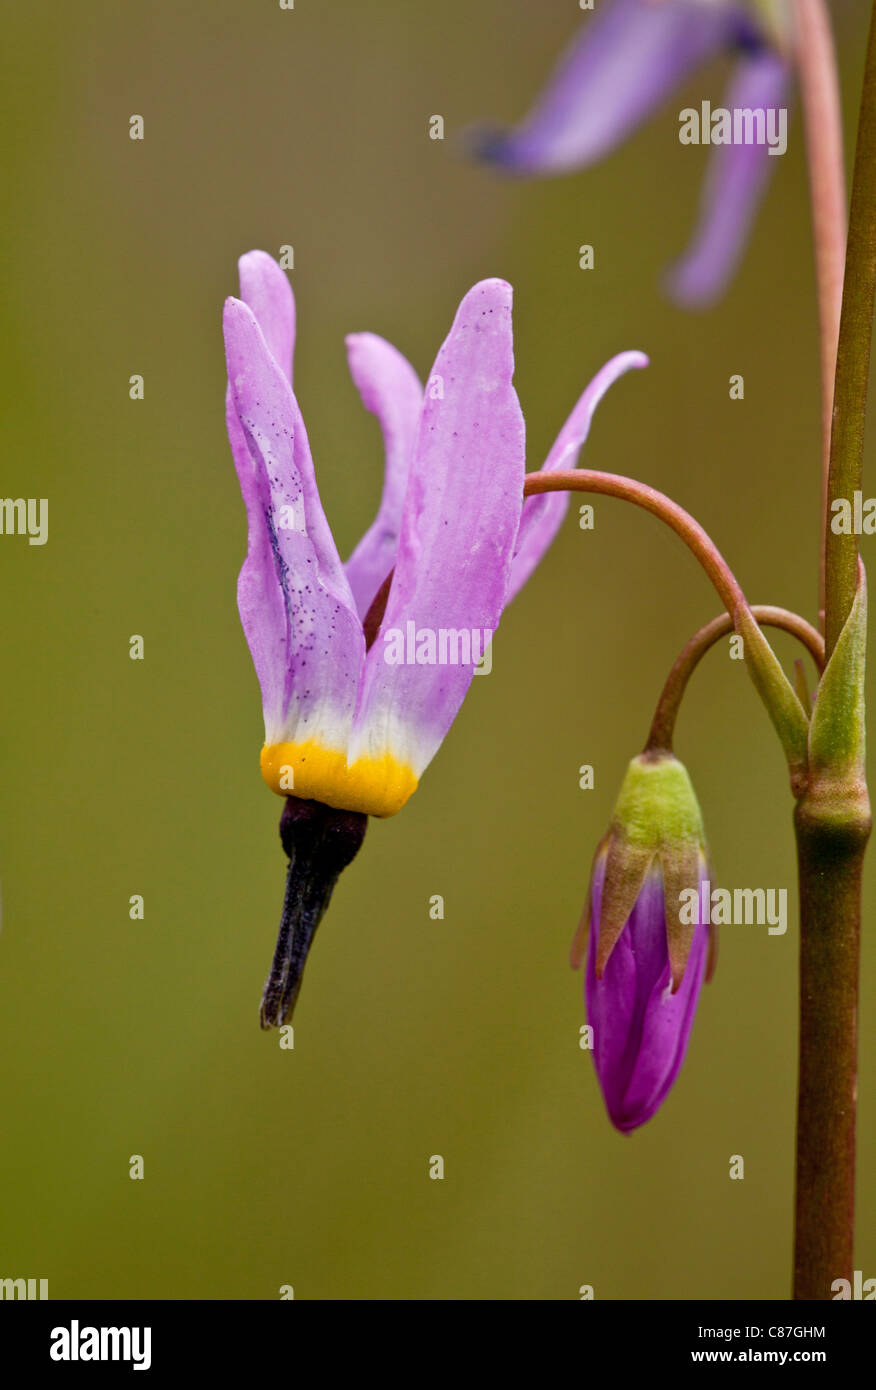 A Shooting star, Dodecatheon alpinum flower and bud, Mount Eddy, California. - Stock Image